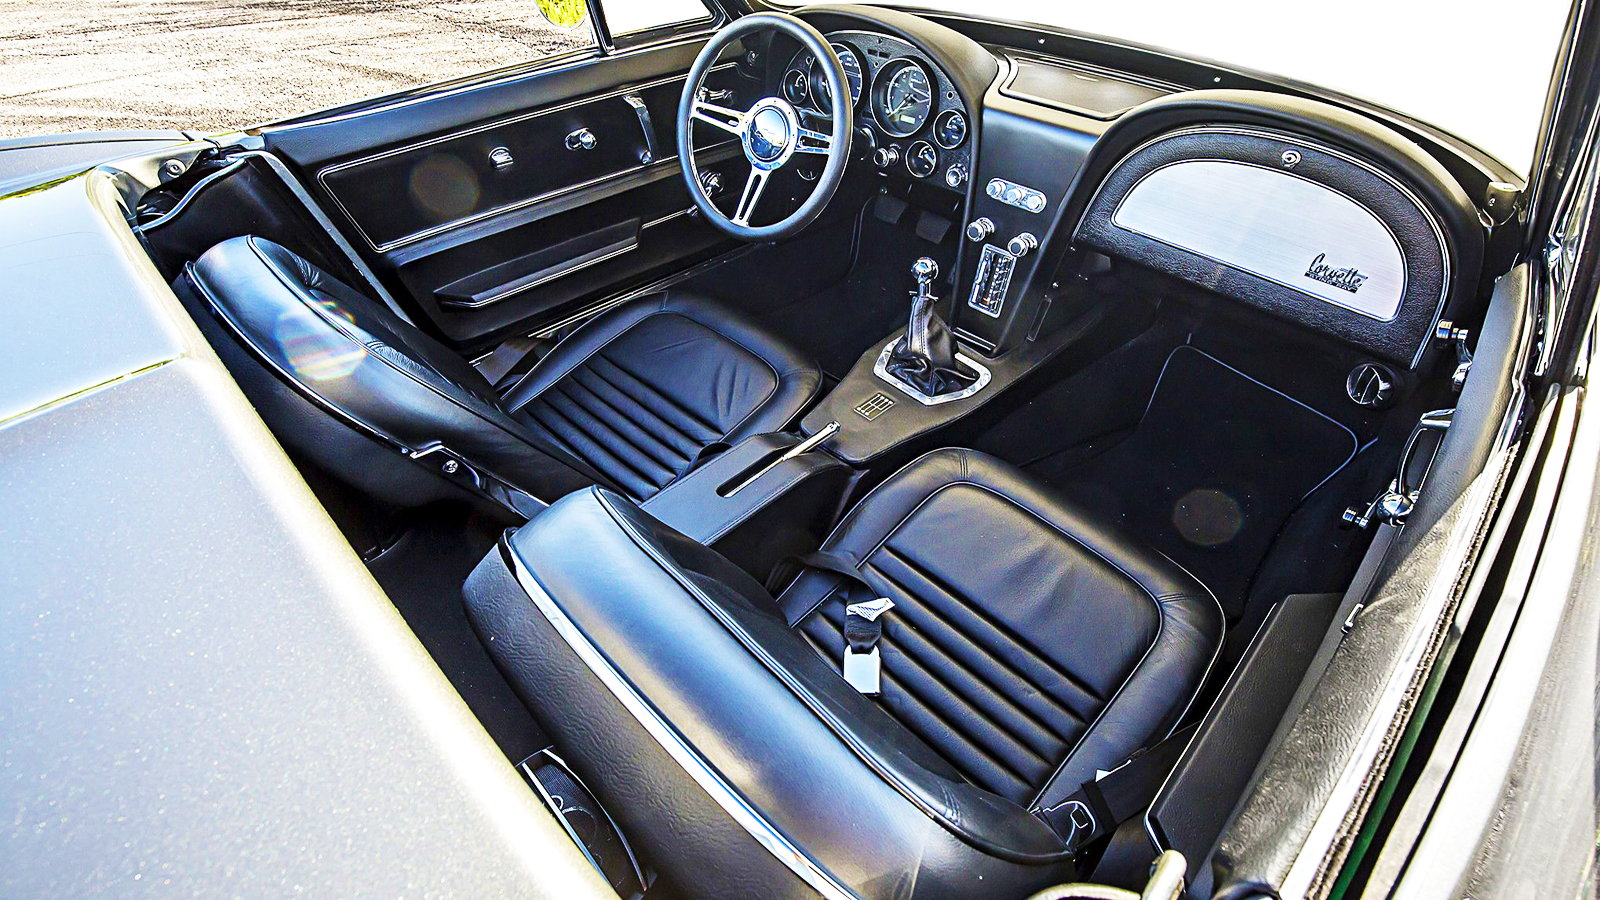 1967 C2 Gets a Sweet Update with an LS7